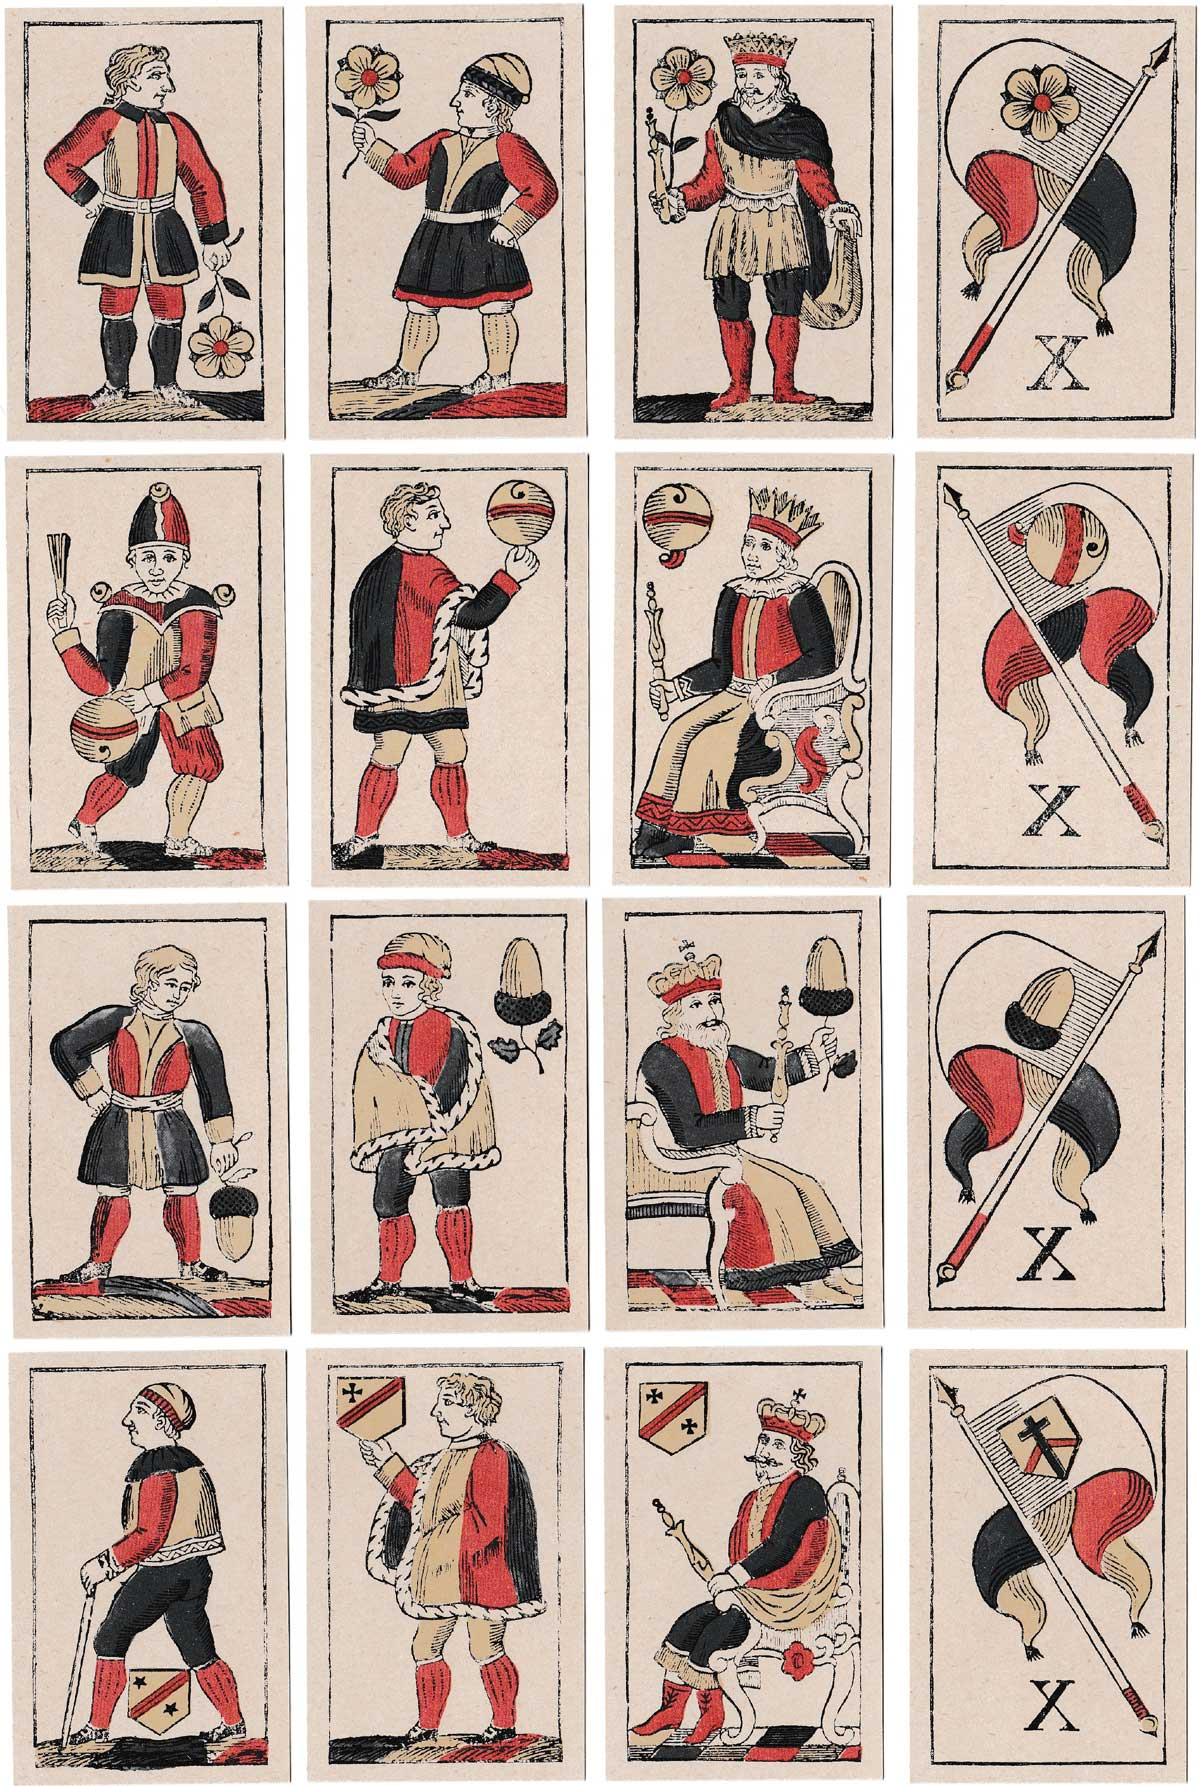 Facsimile edition of deck first published by Johannes Müller in c.1840